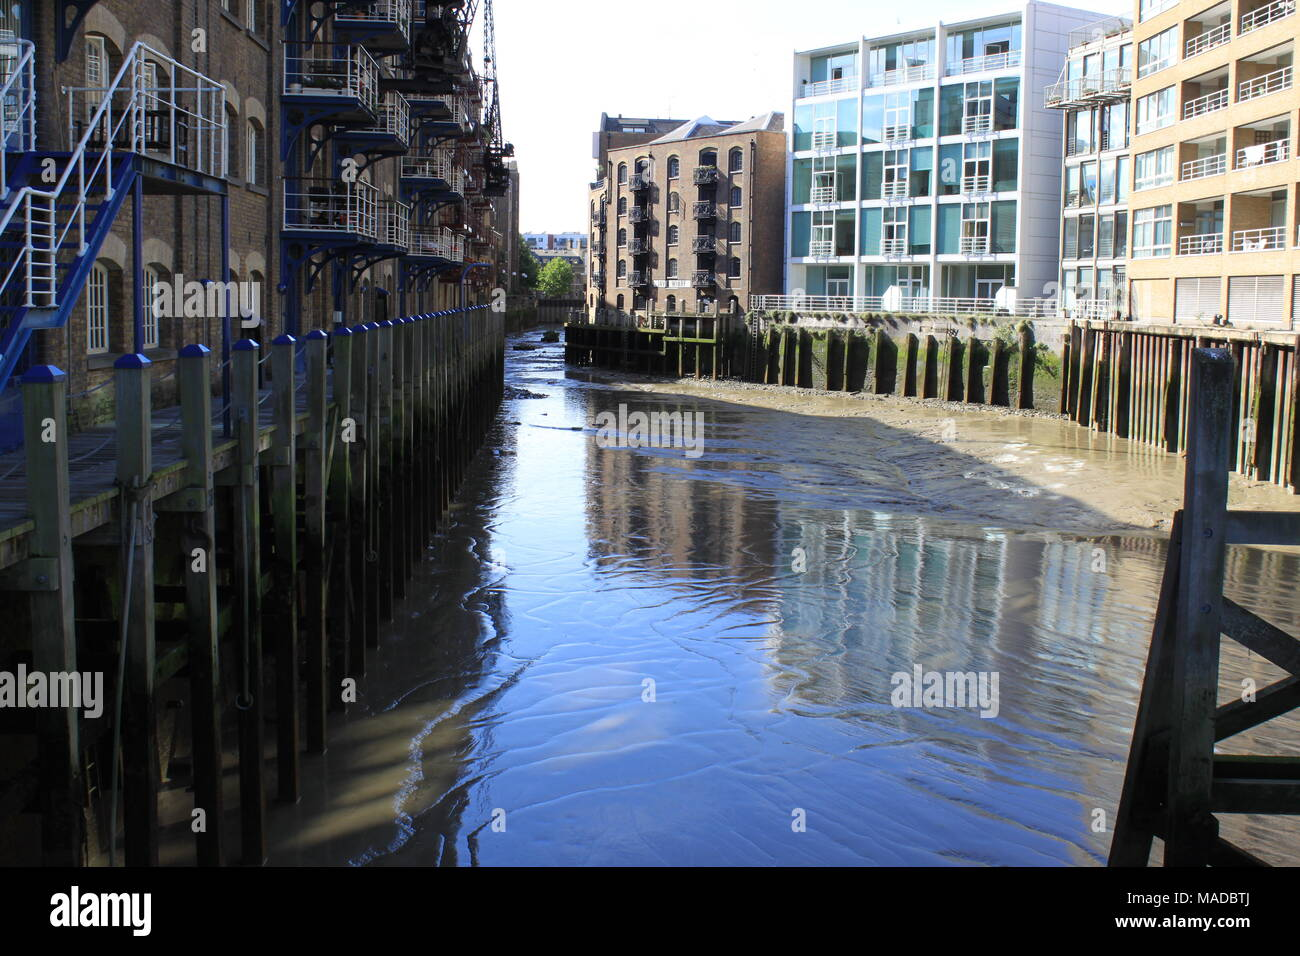 View down St Saviours Dock at the mouth of the River Neckinger (which flows into the Thames), London, UK, PETER GRANT - Stock Image